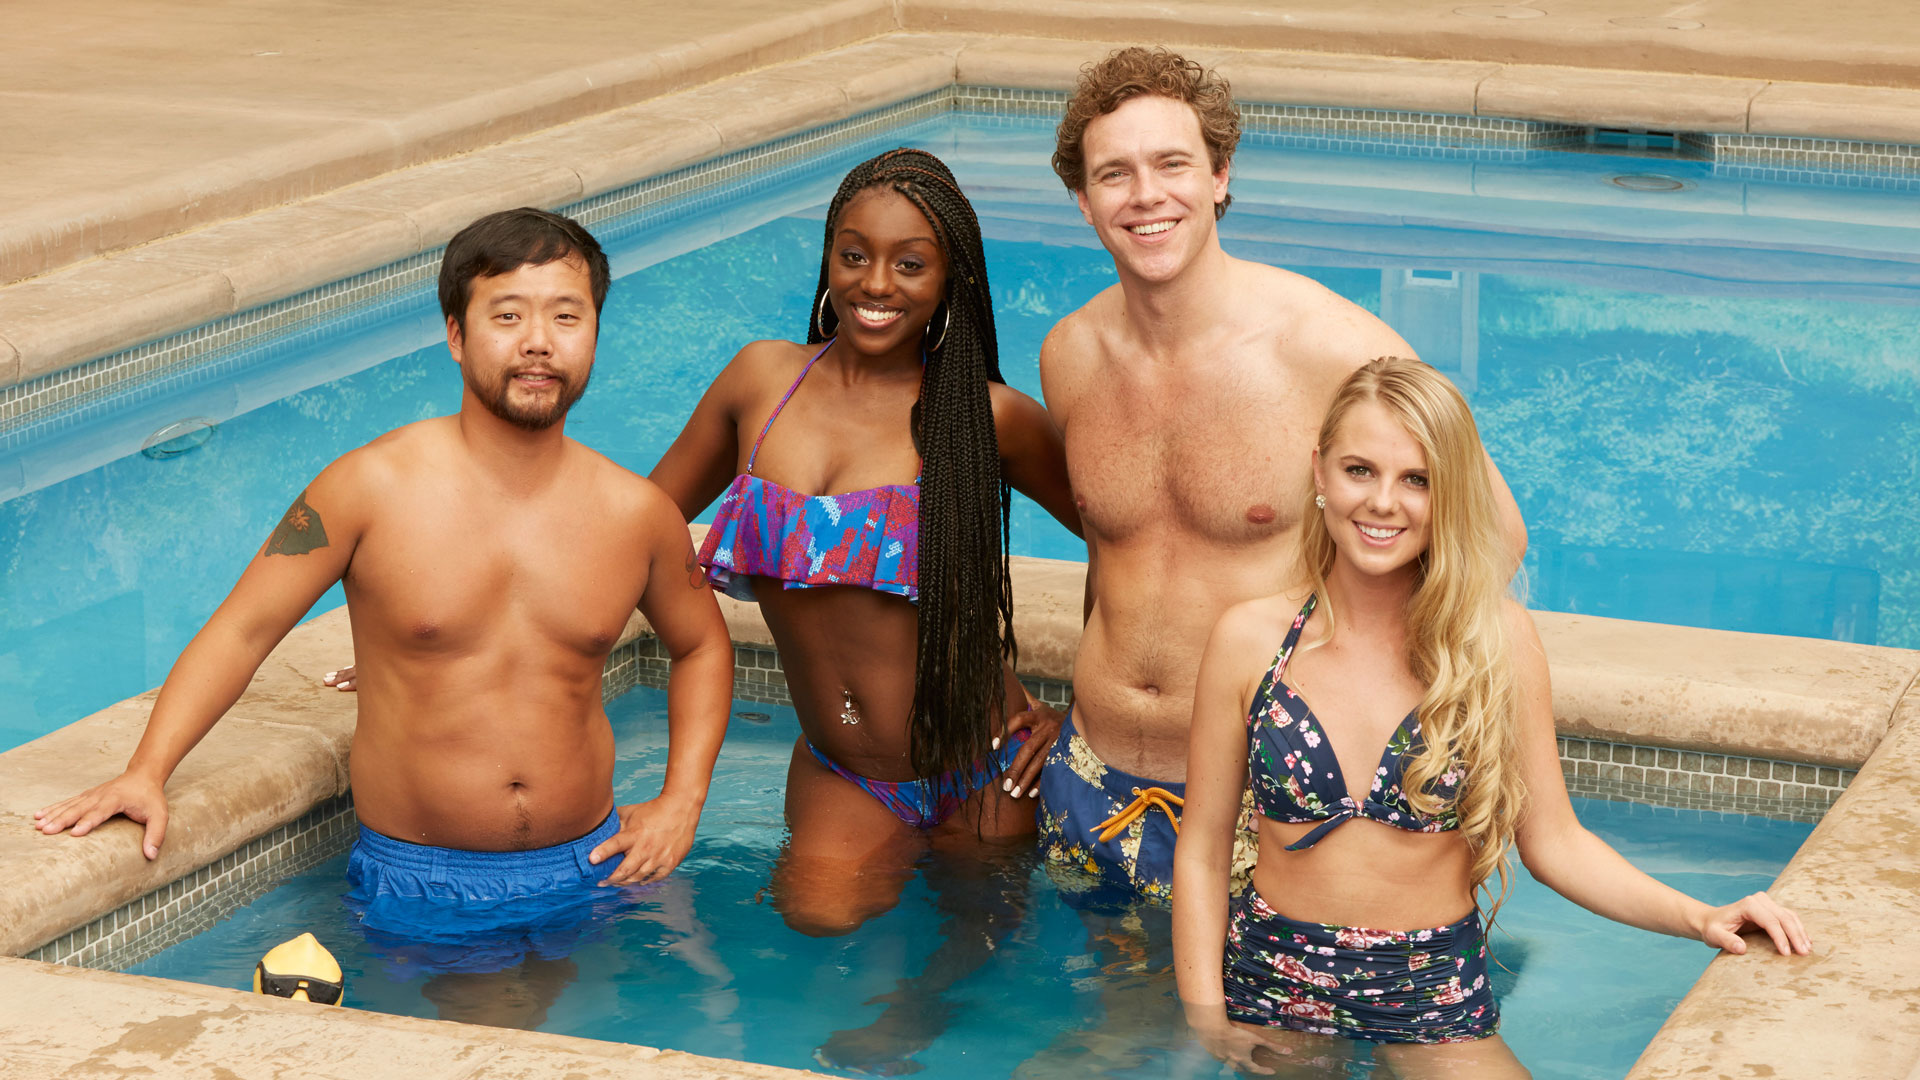 The returning Houseguests keep cool in a new pool area in the Big Brother backyard.